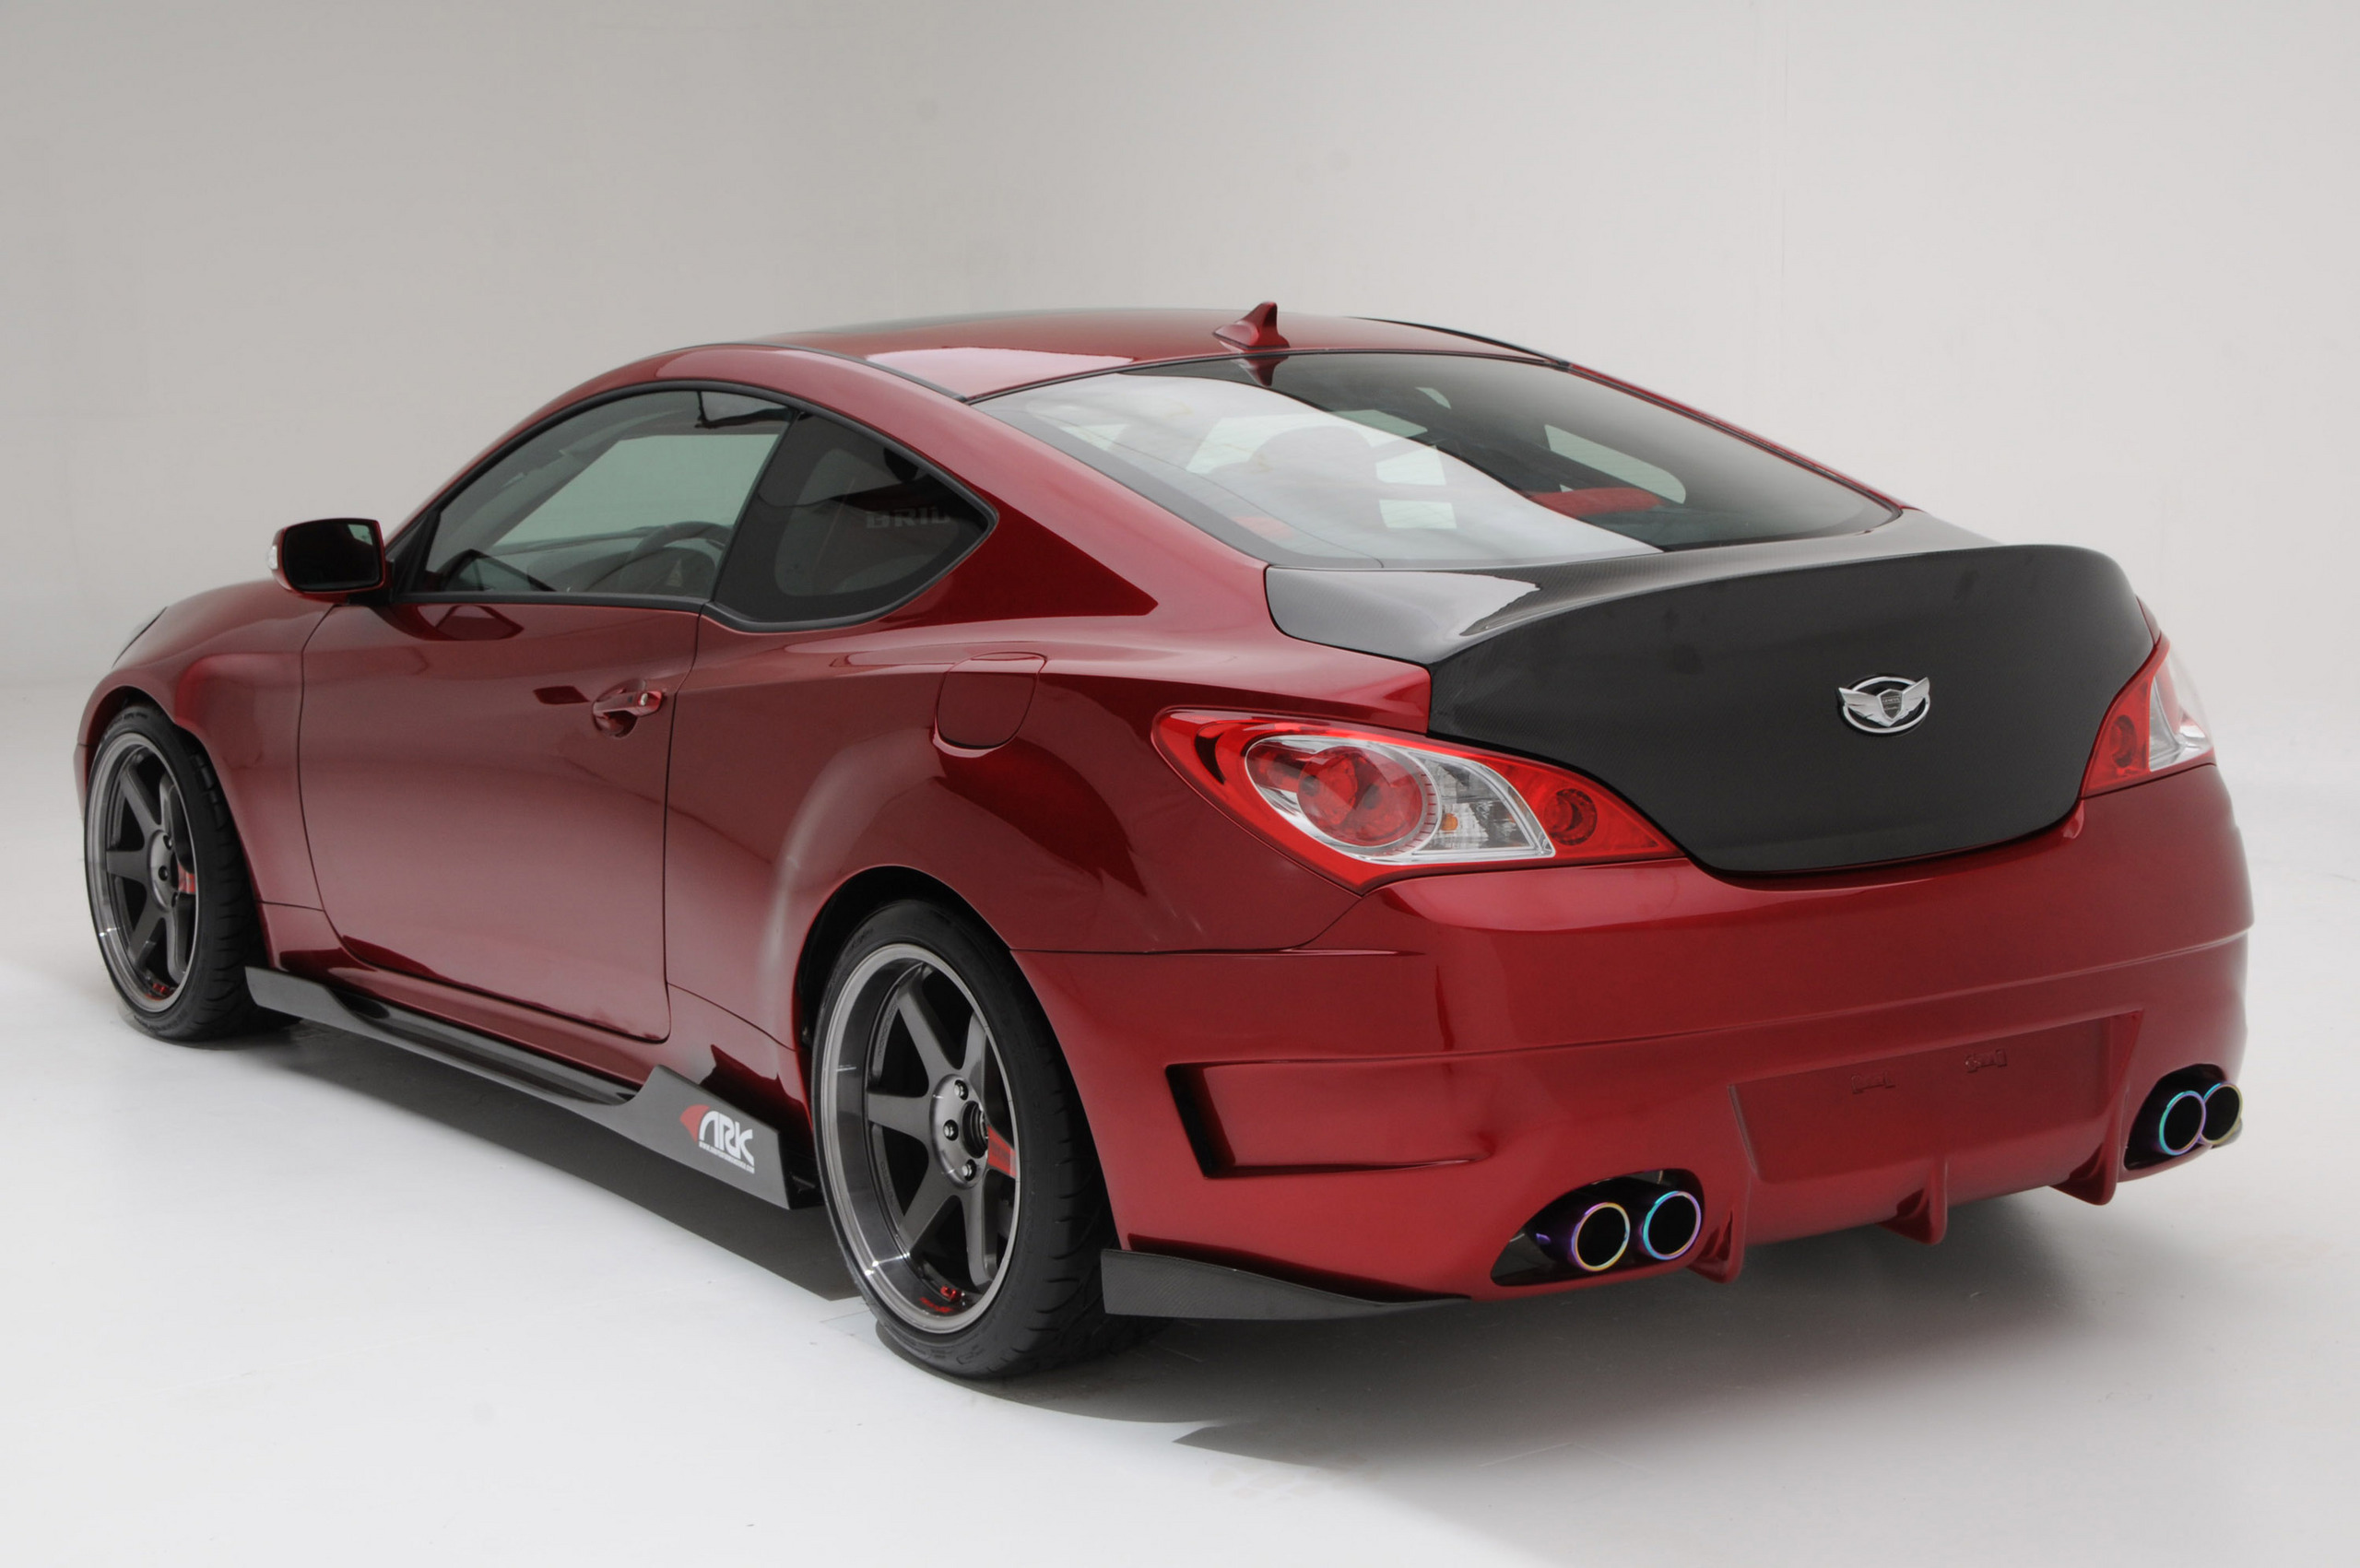 hyundai genesis coupe by ark performance hyundai photo. Black Bedroom Furniture Sets. Home Design Ideas